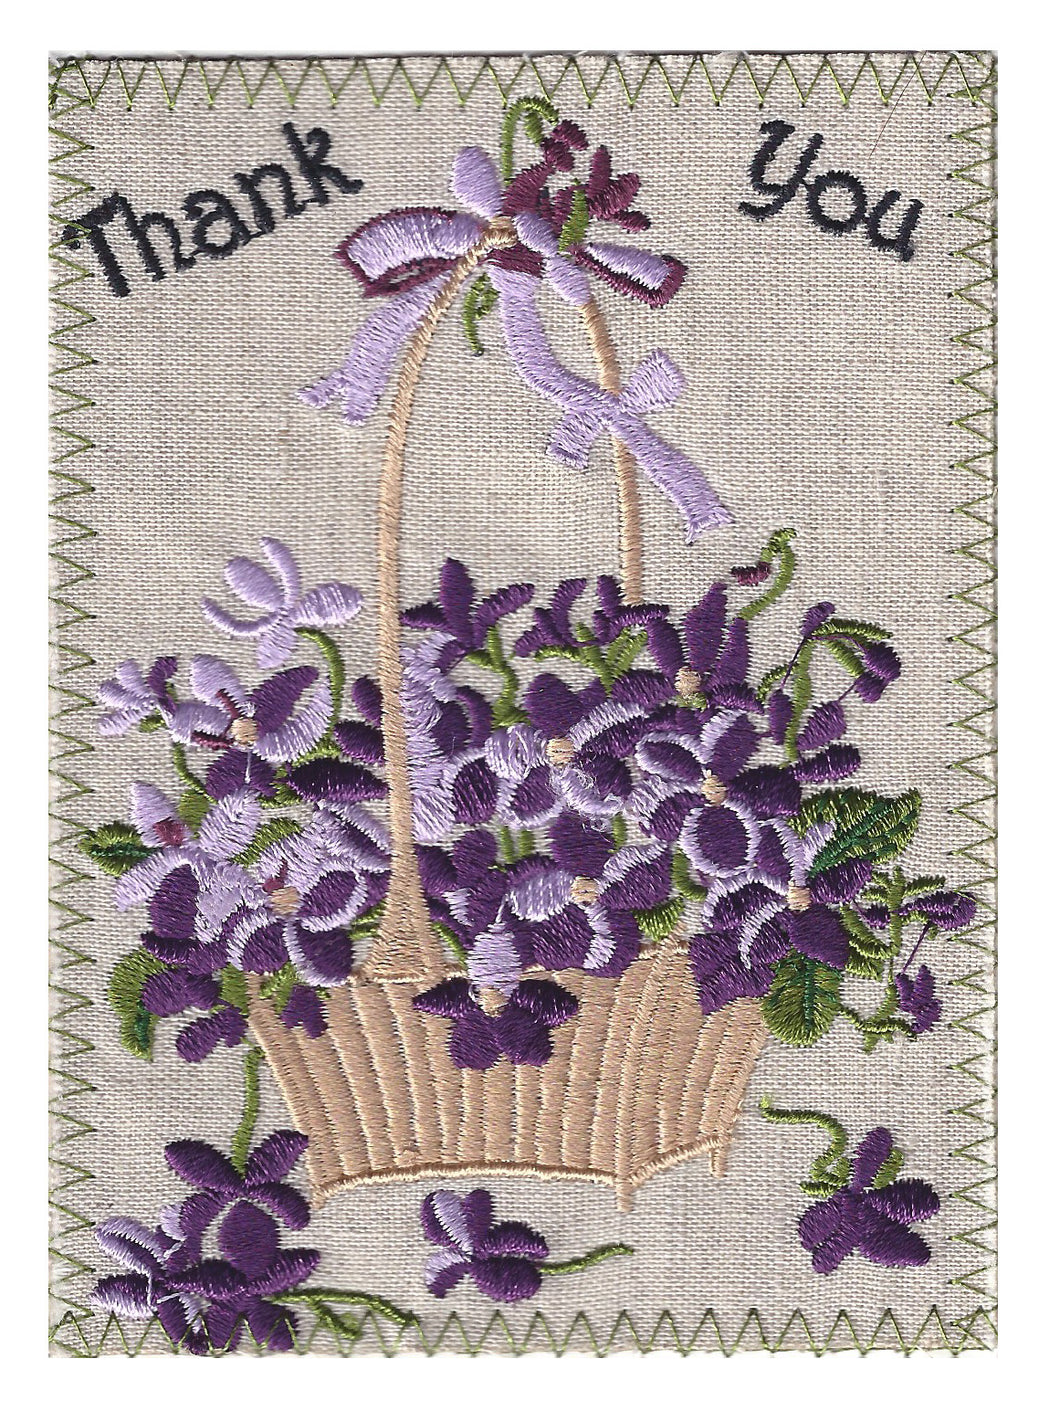 Tan Wicker Basket with Lavender Flowers - TY215P